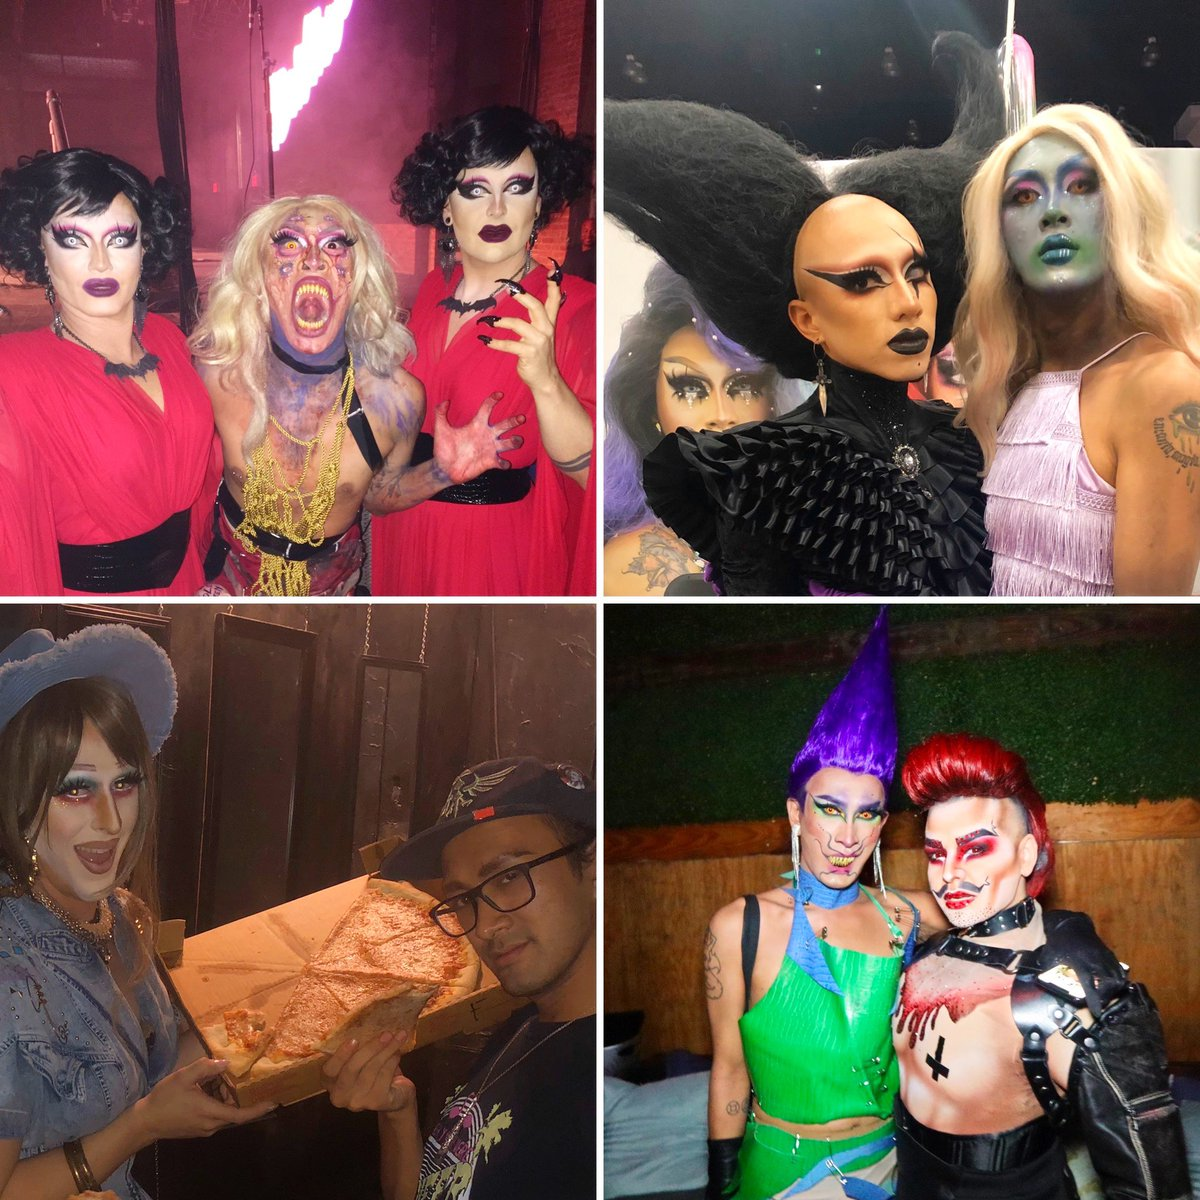 I guess you can say I'm a fan of the show  @bouletbrothers @vandervonodd @biqtchpuddin @LANDONCIDER <br>http://pic.twitter.com/Nuk2d6YZiB